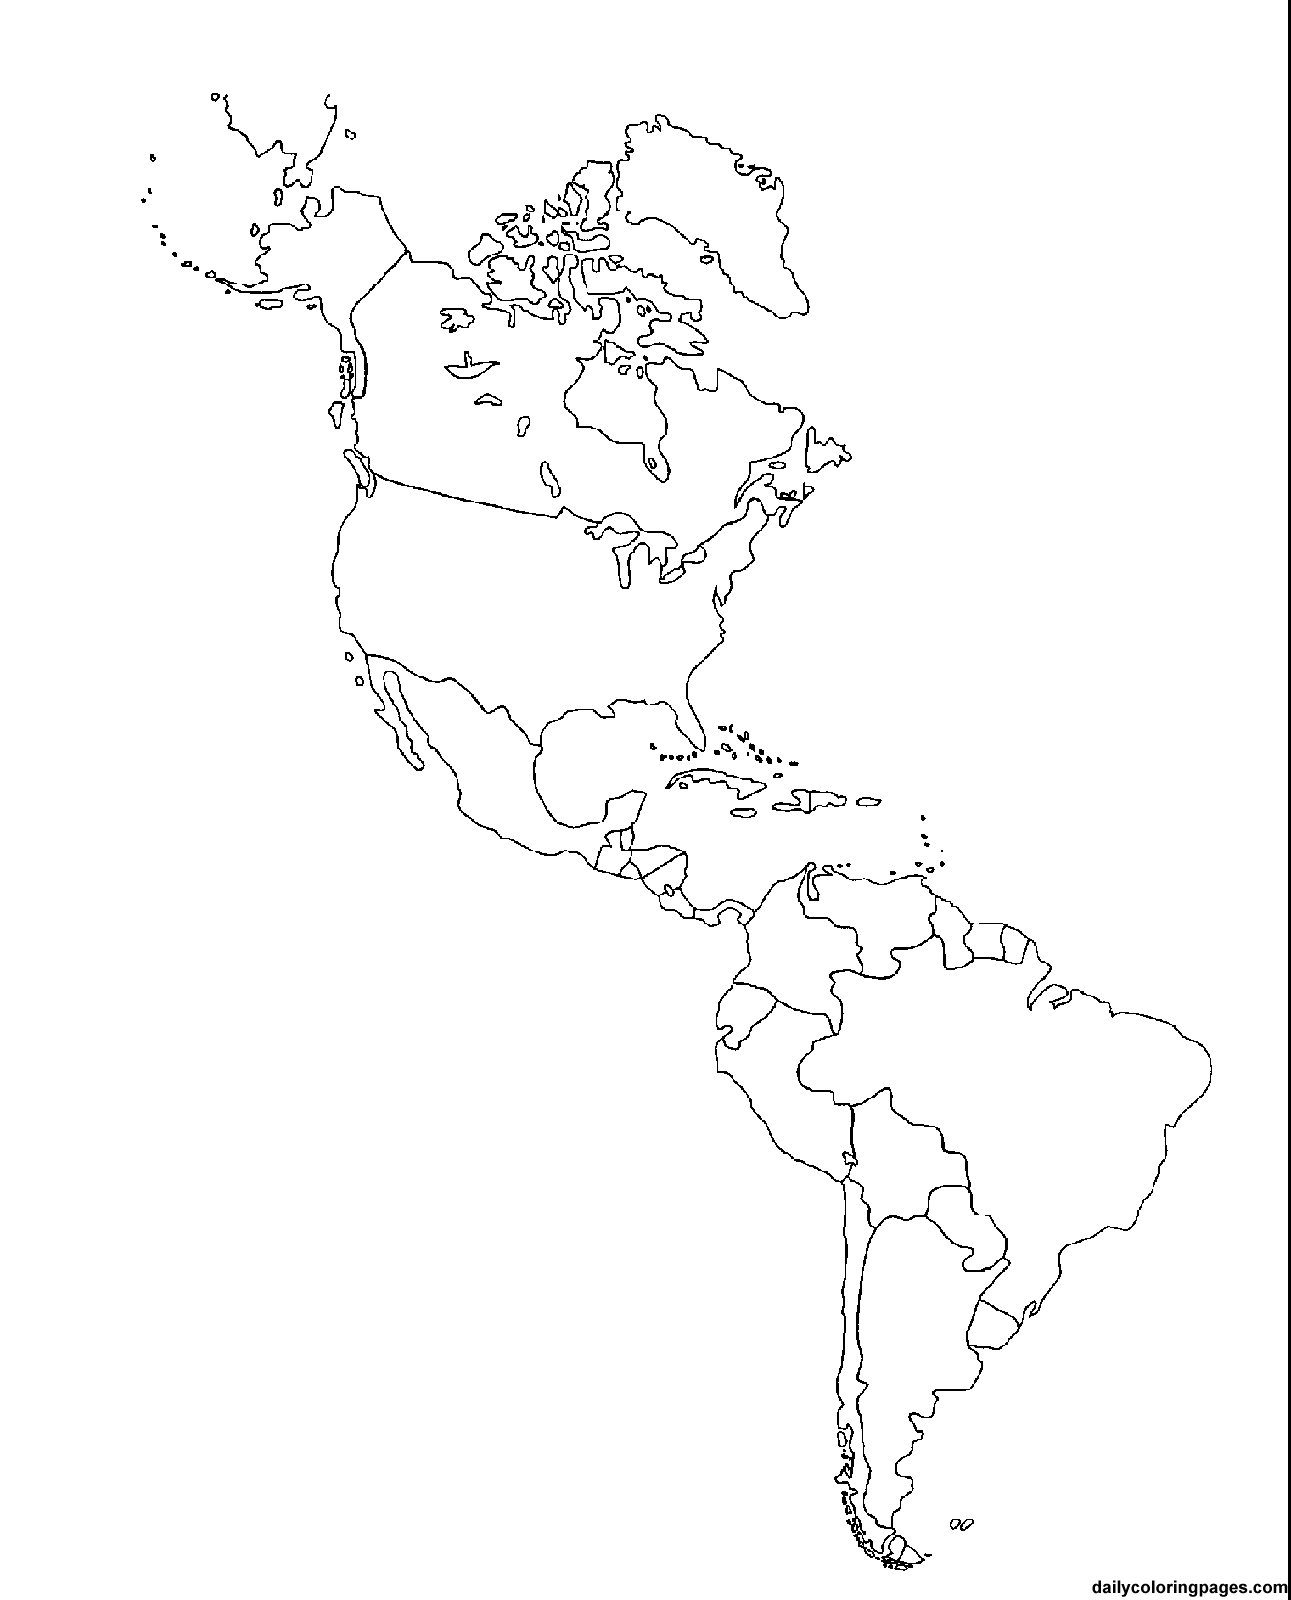 Outline Maps For Continents Countries Islands States And More ...